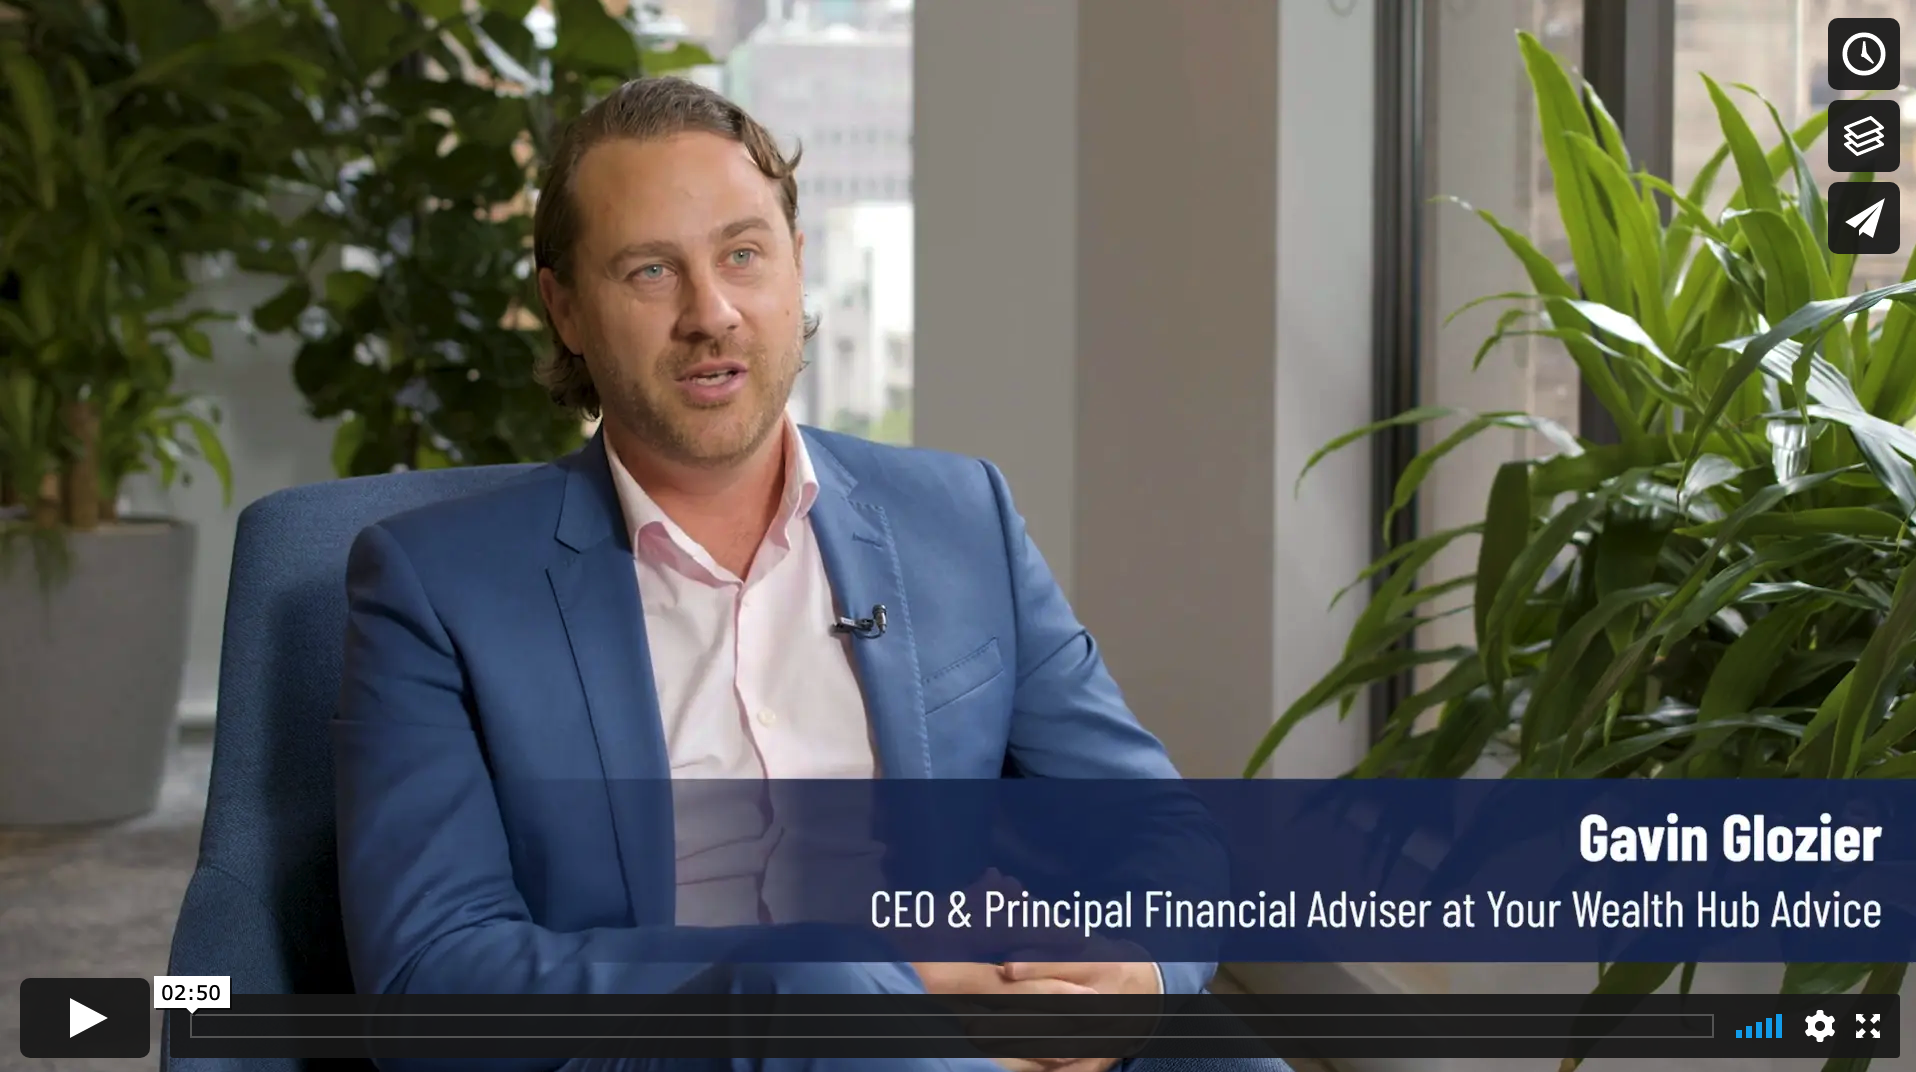 Case Study: Your Wealth Hub Advice and Midwinter Financial Services